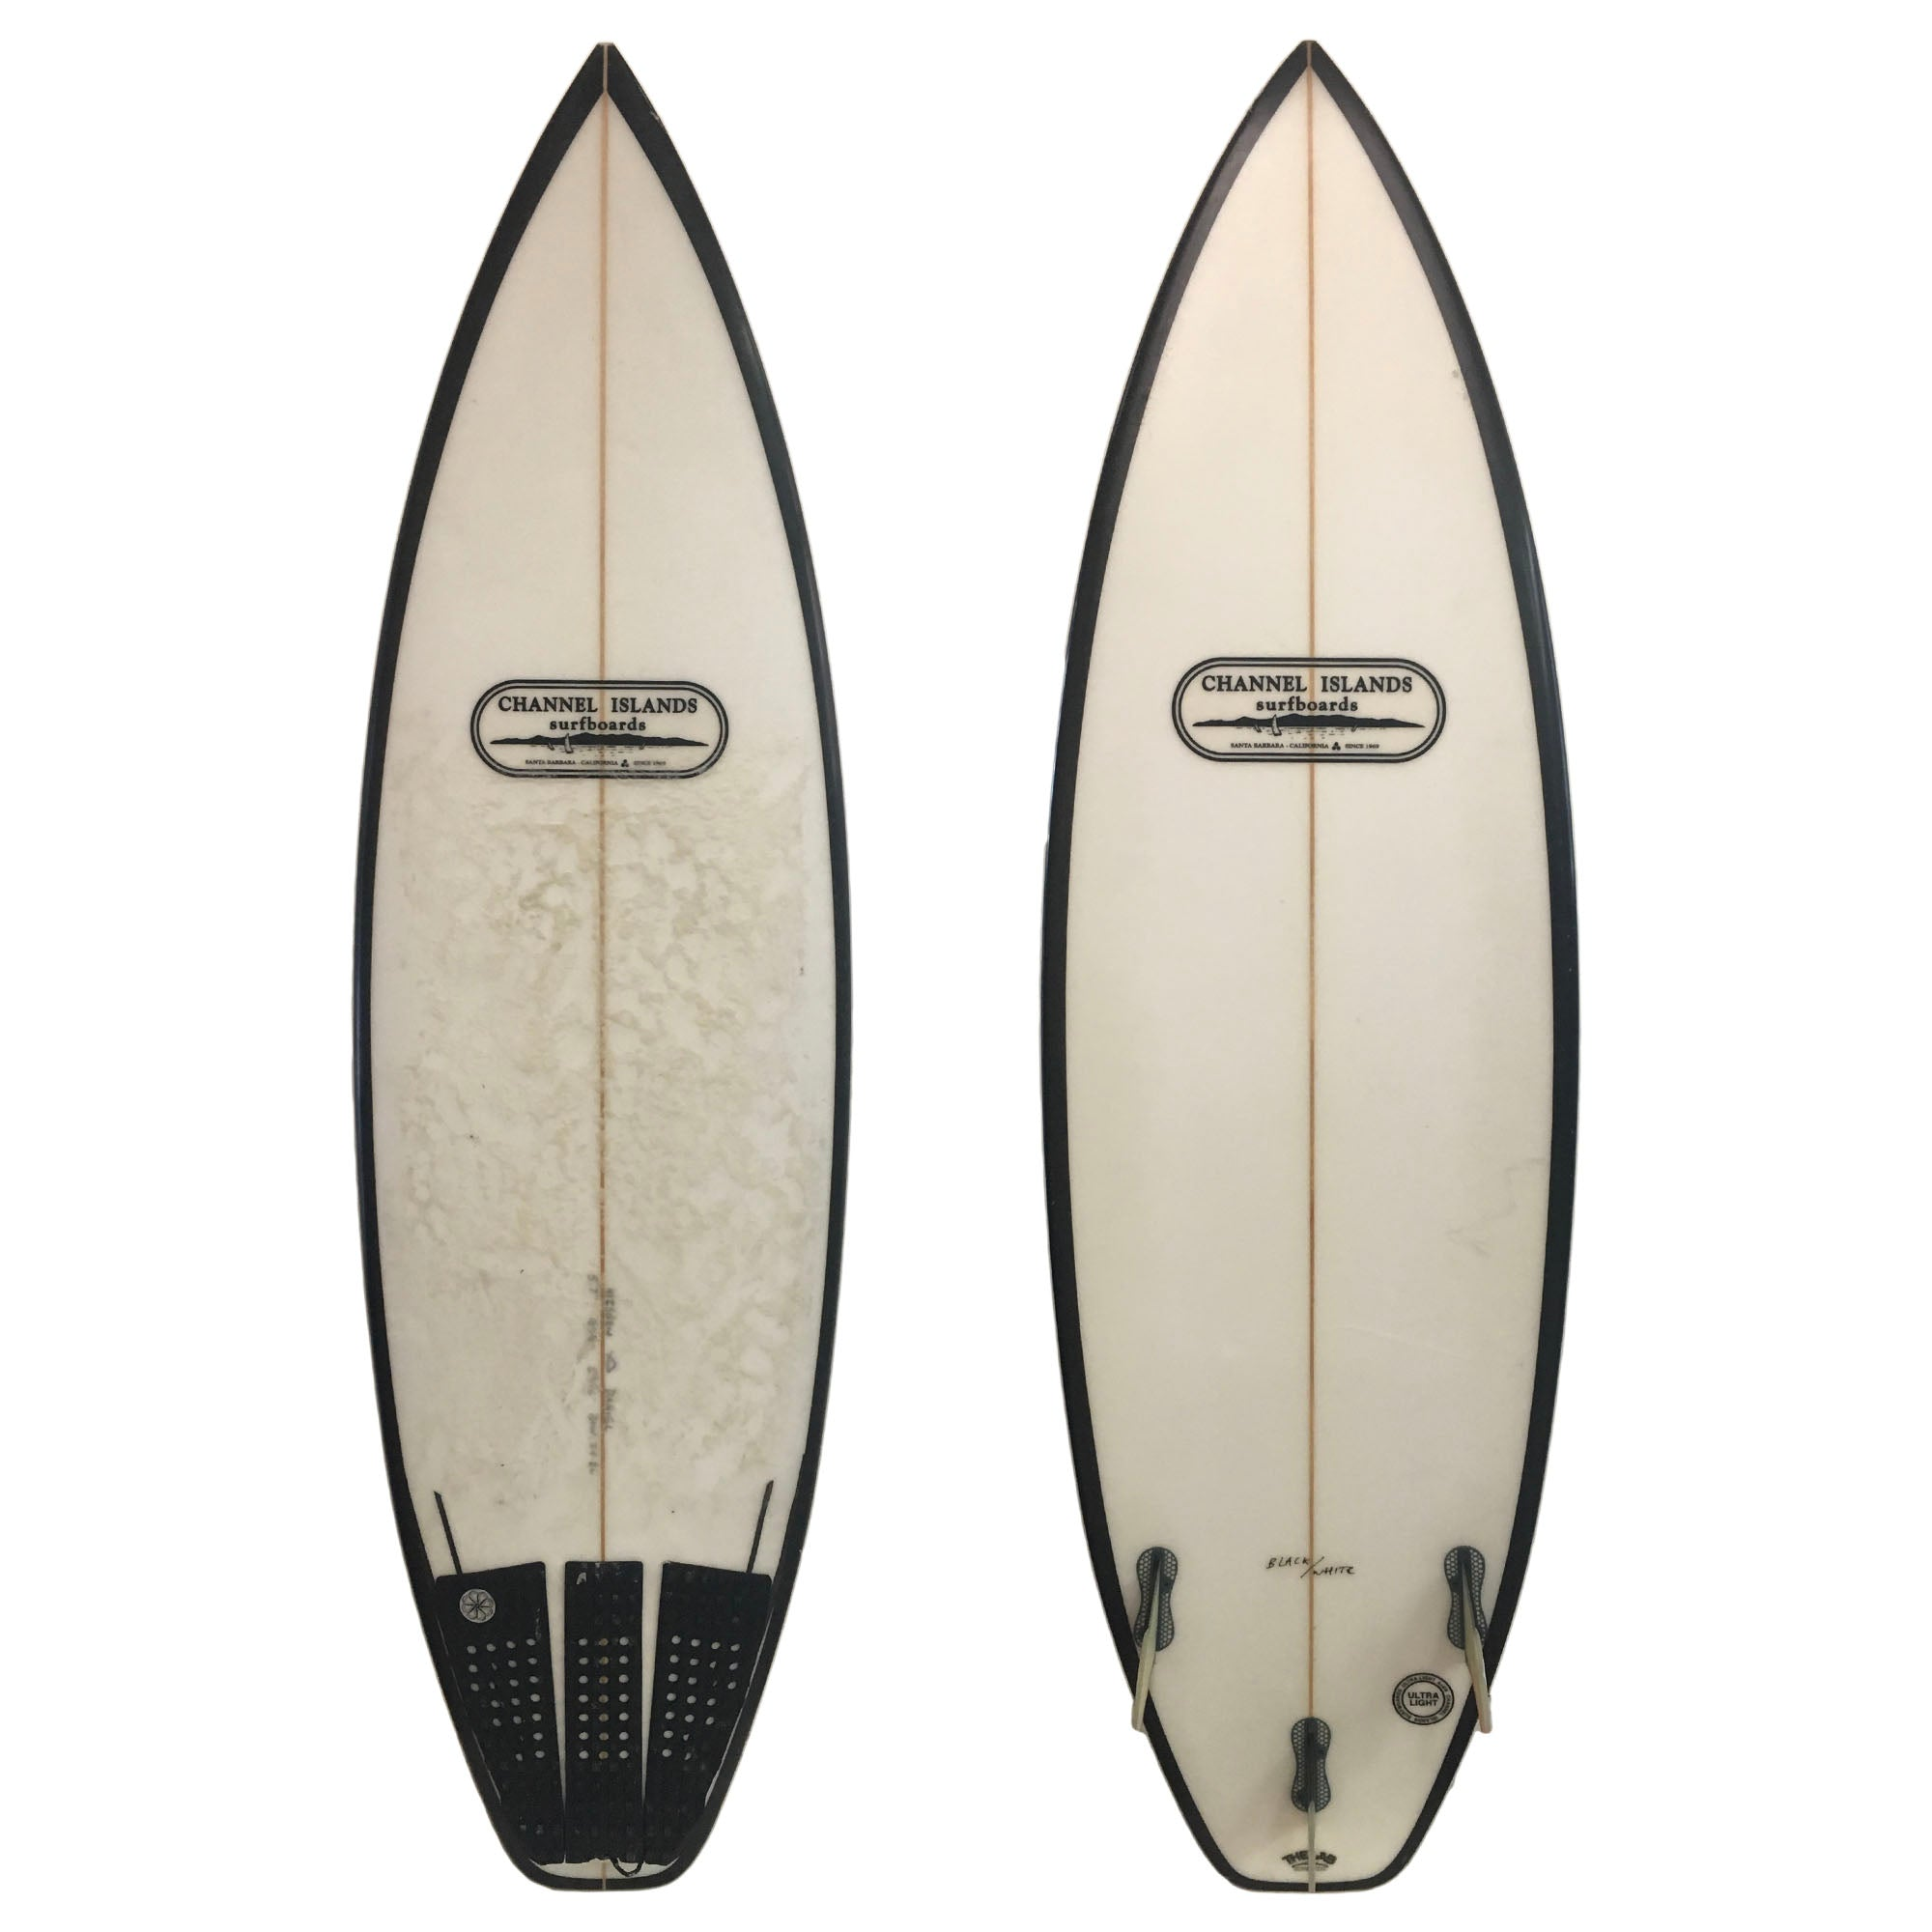 Channel Islands Black and White 5'7 Used Surfboard